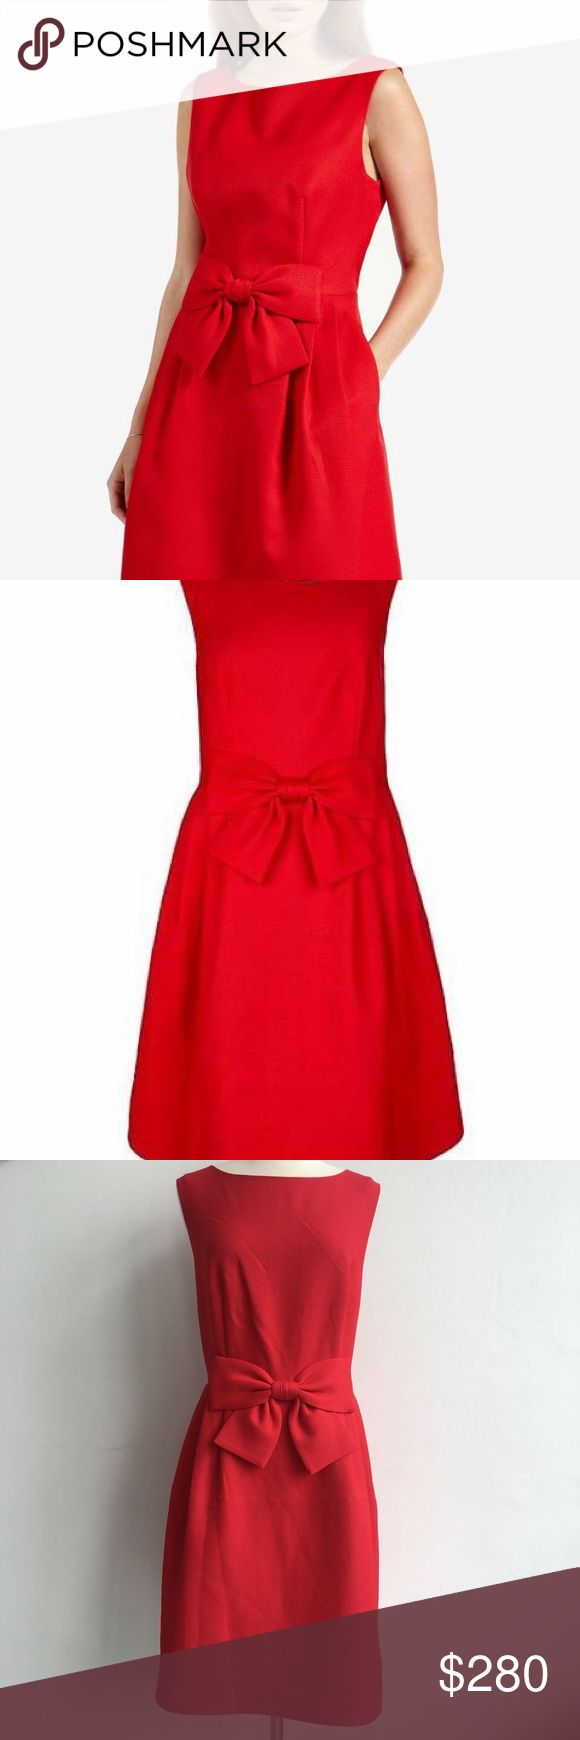 Ted baker red bow dress beautiful bright red bow dress by ted baker